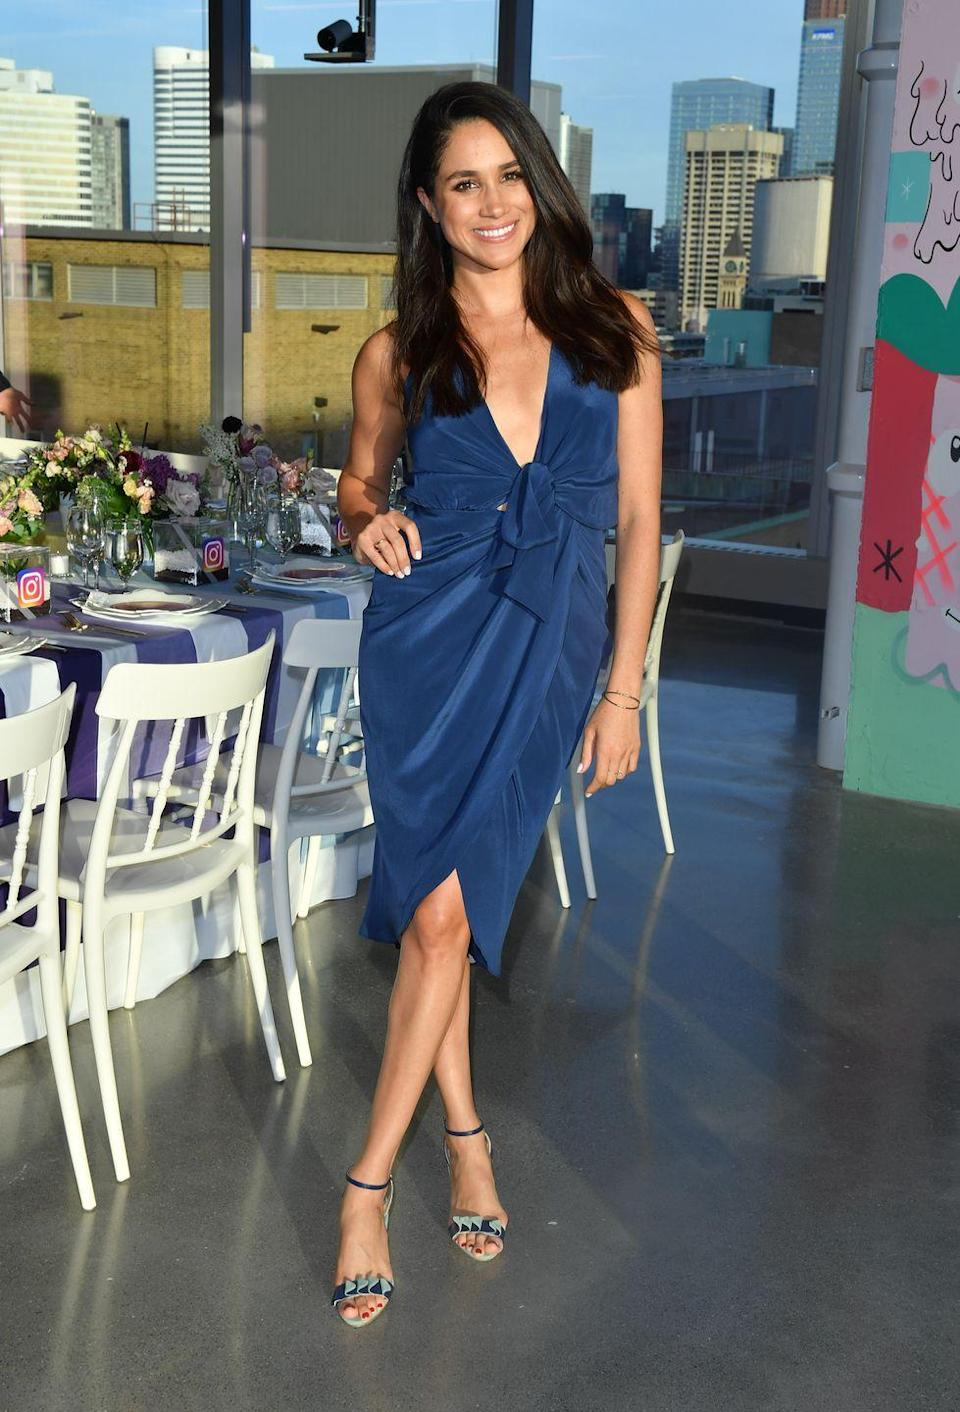 <p>And Meghan took a cue from her future sister-in-law by wearing a dress in the same color, also featuring detailing around the waist, at a dinner for Instagram in 2016. </p>